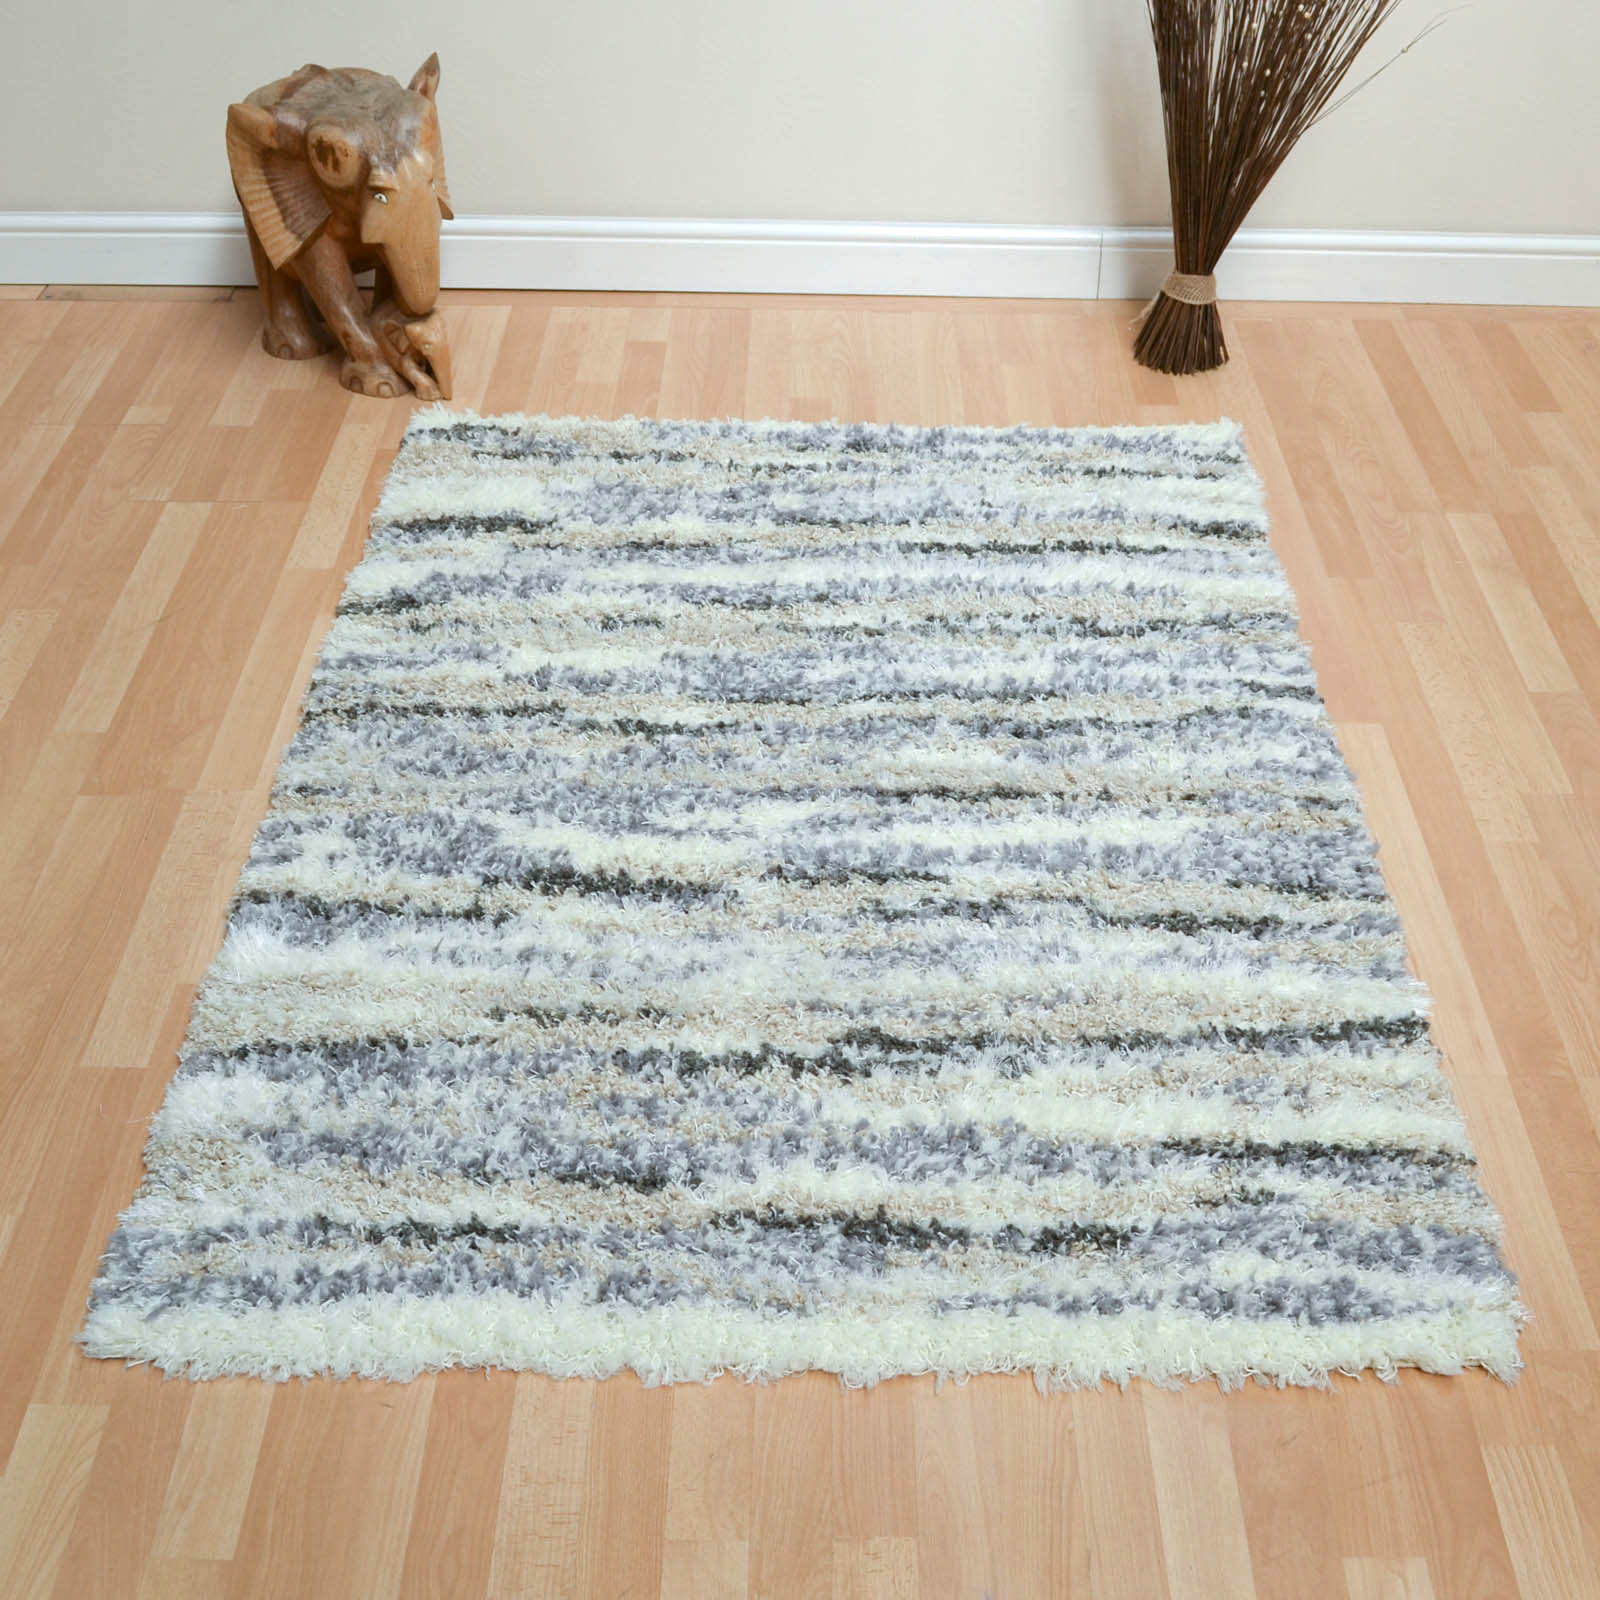 Magnificent Rugs in Artic